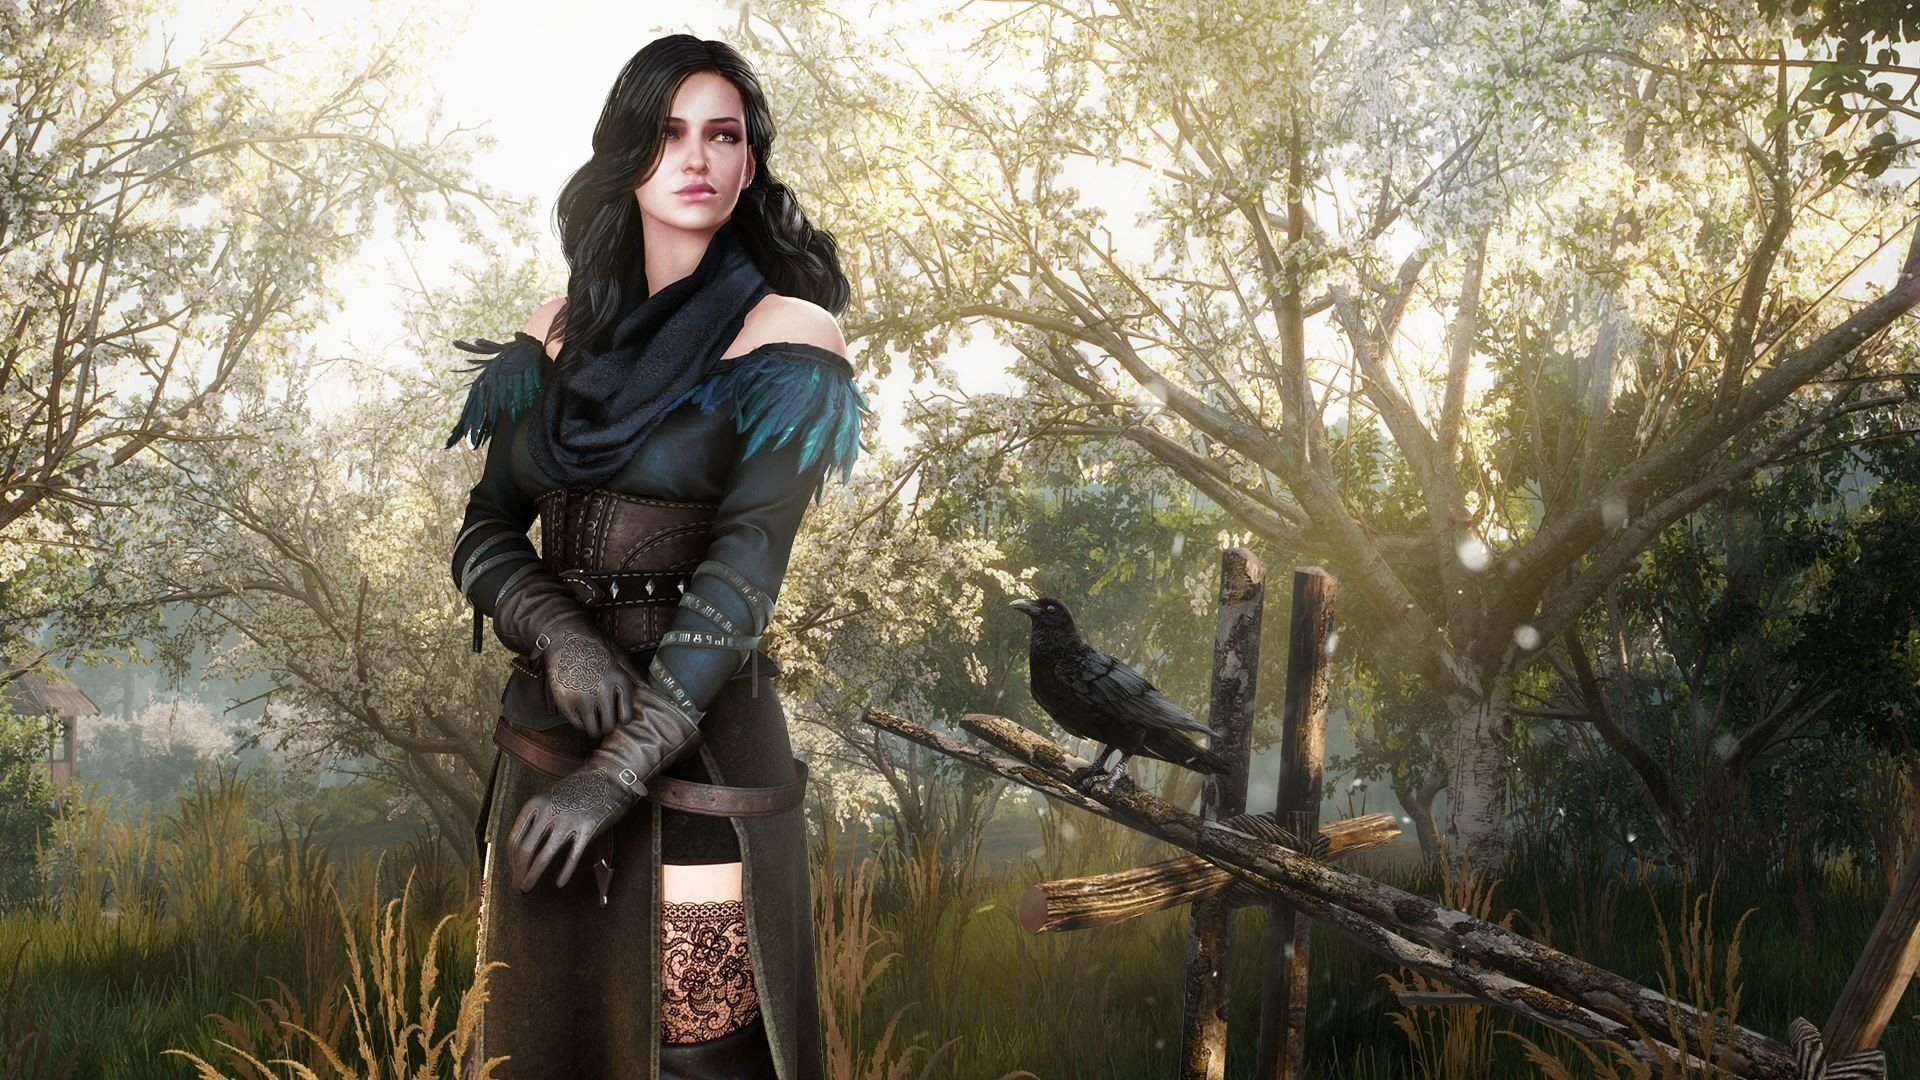 Hot yennefer witcher 3 The Witcher